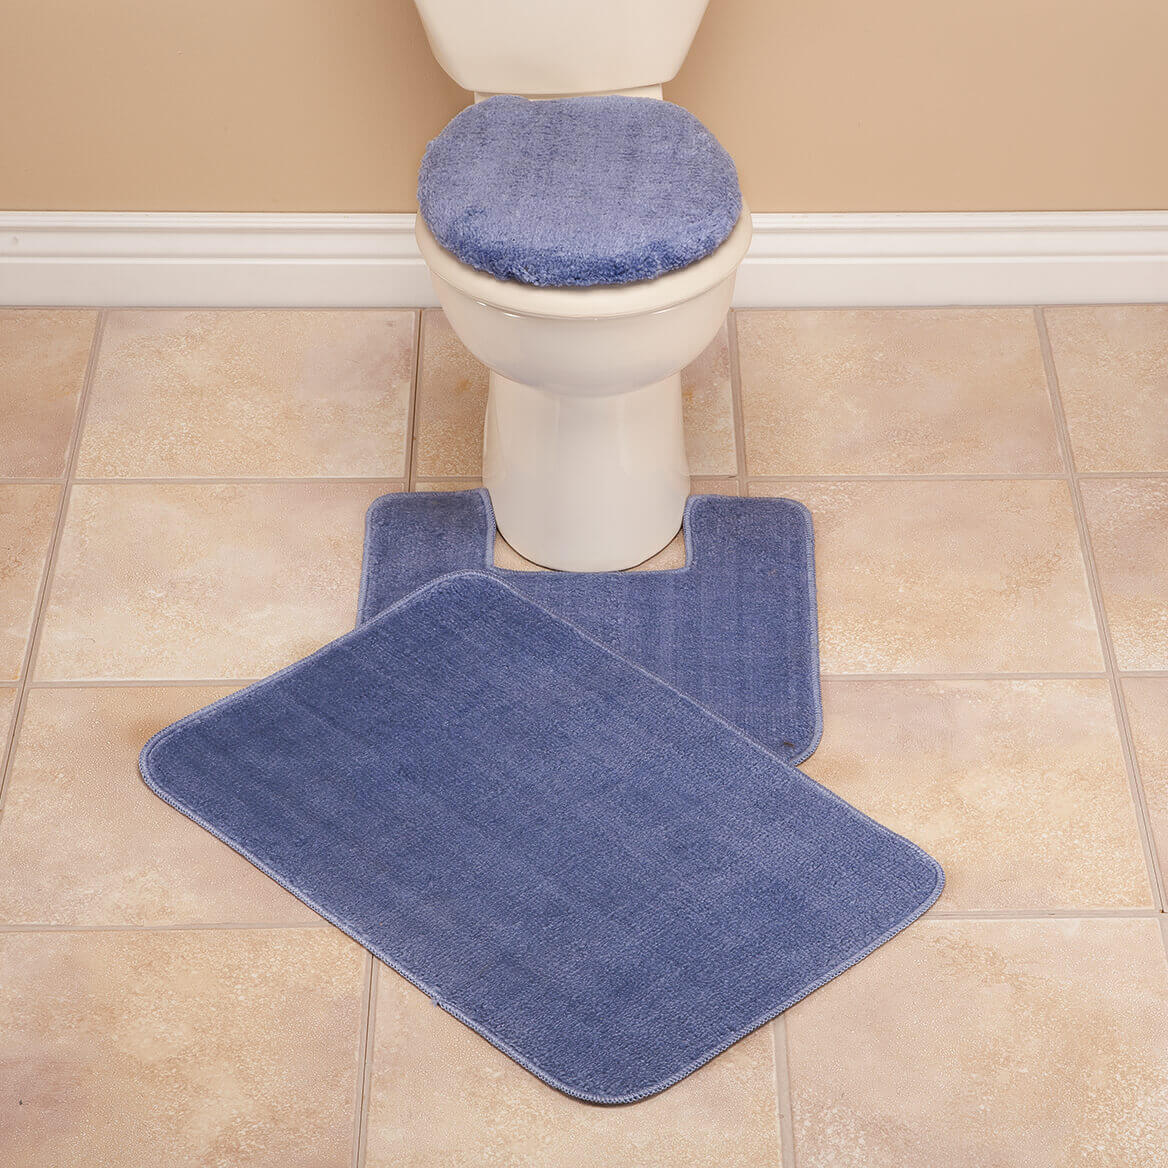 Bathroom Mat Sets Plush Bath Rug Set Toilet Seat Cover And Rug Set Miles